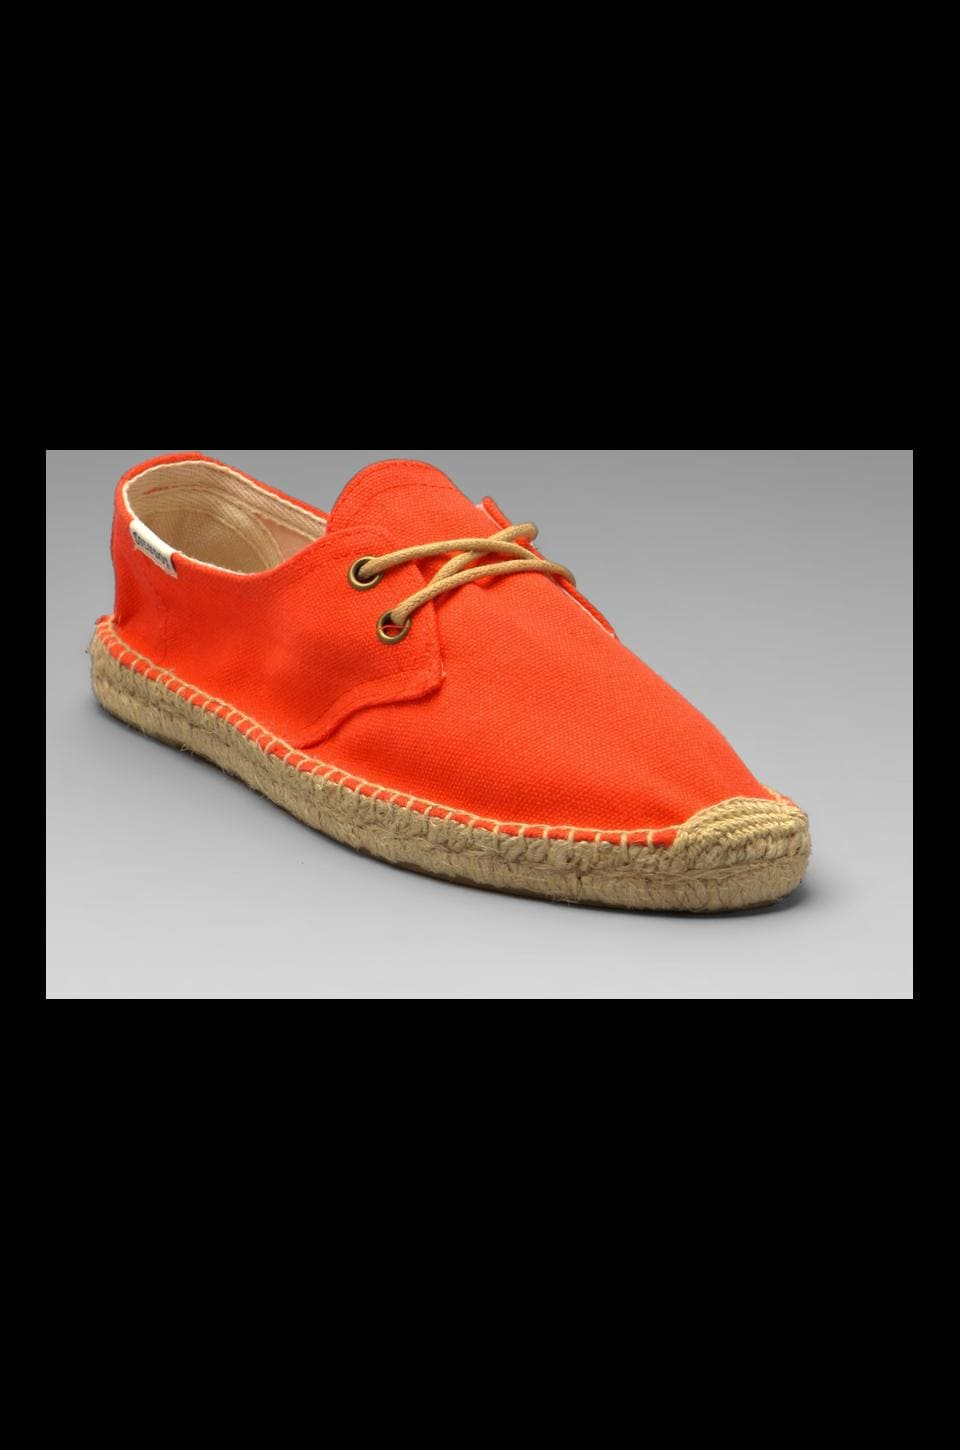 Soludos Canvas Derby Lace Up in Coral